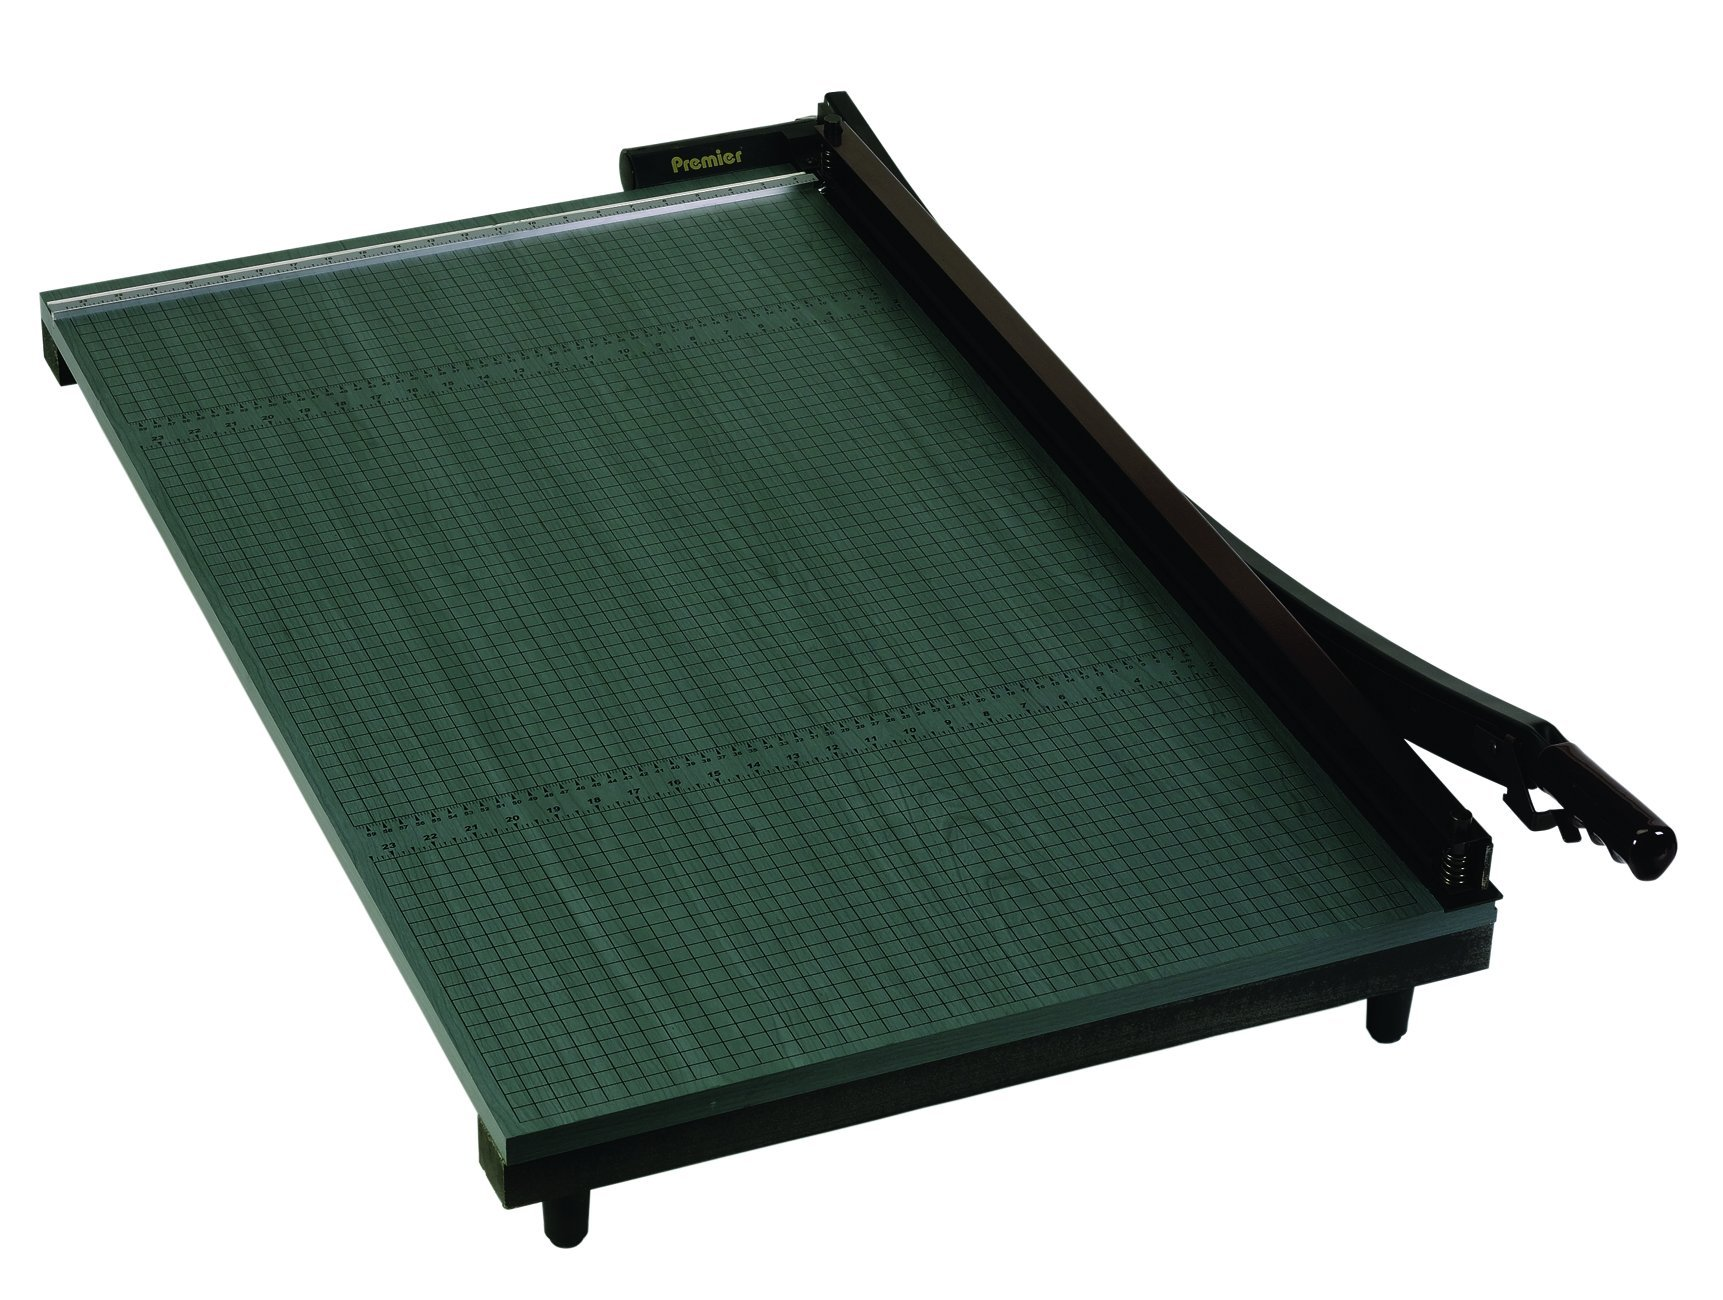 Premier Heavy-Duty Green Board Wood Trimmer, Cut Up to 20 Sheets at One Time, Steel Blades, 36 Inches, Green (PREWC36)